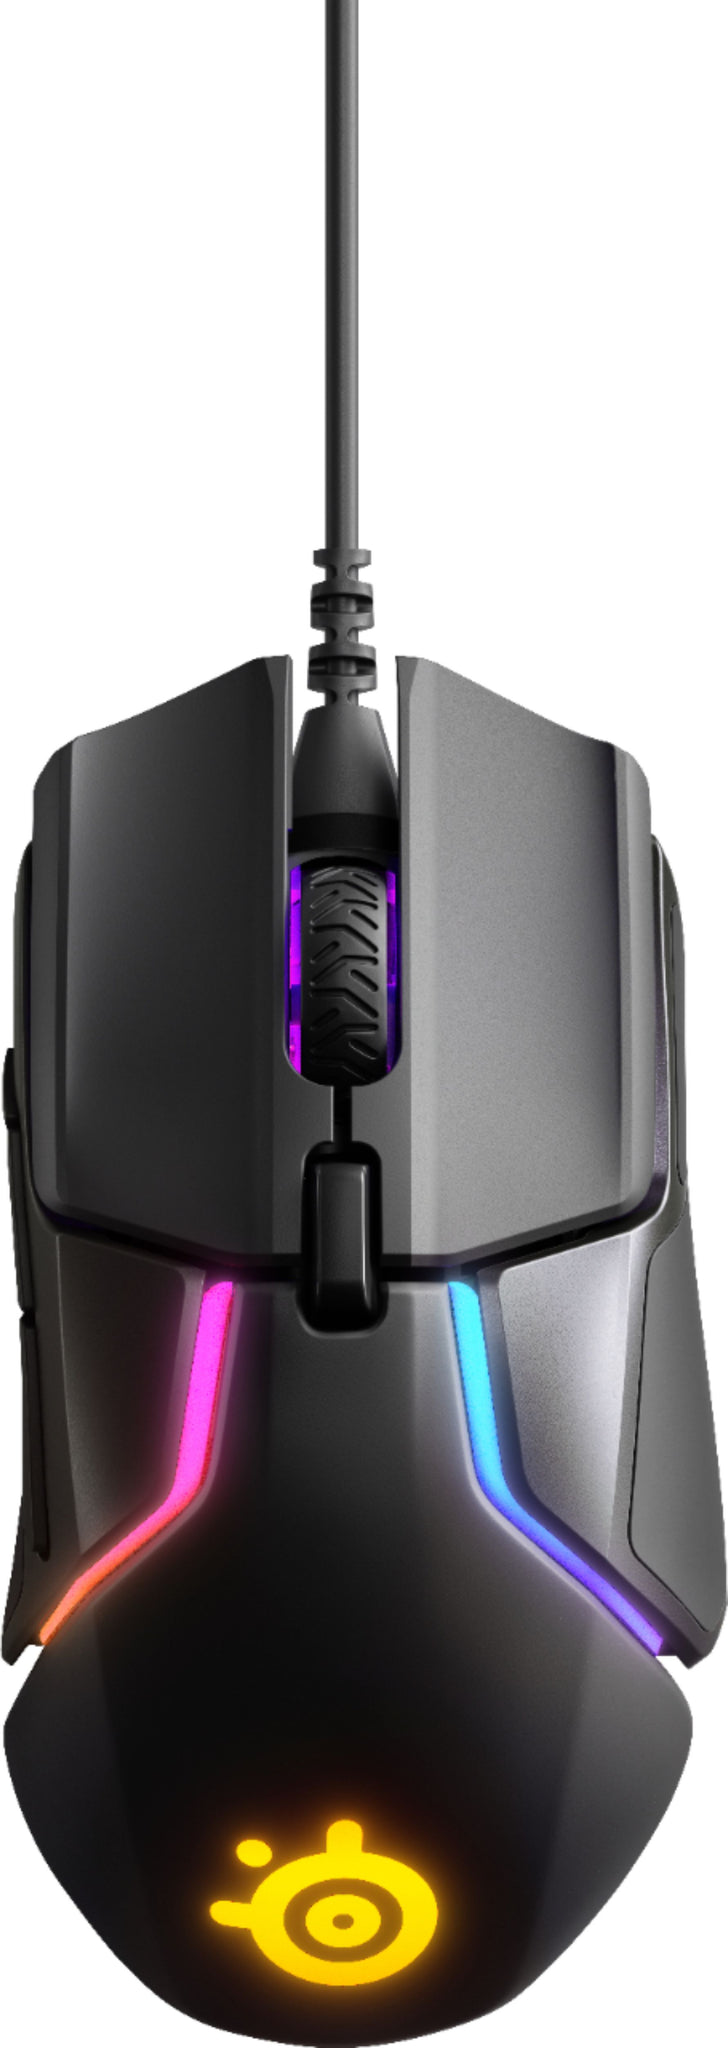 SteelSeries - Rival 600 Wired Optical Gaming Mouse with RGB Lighting - Black